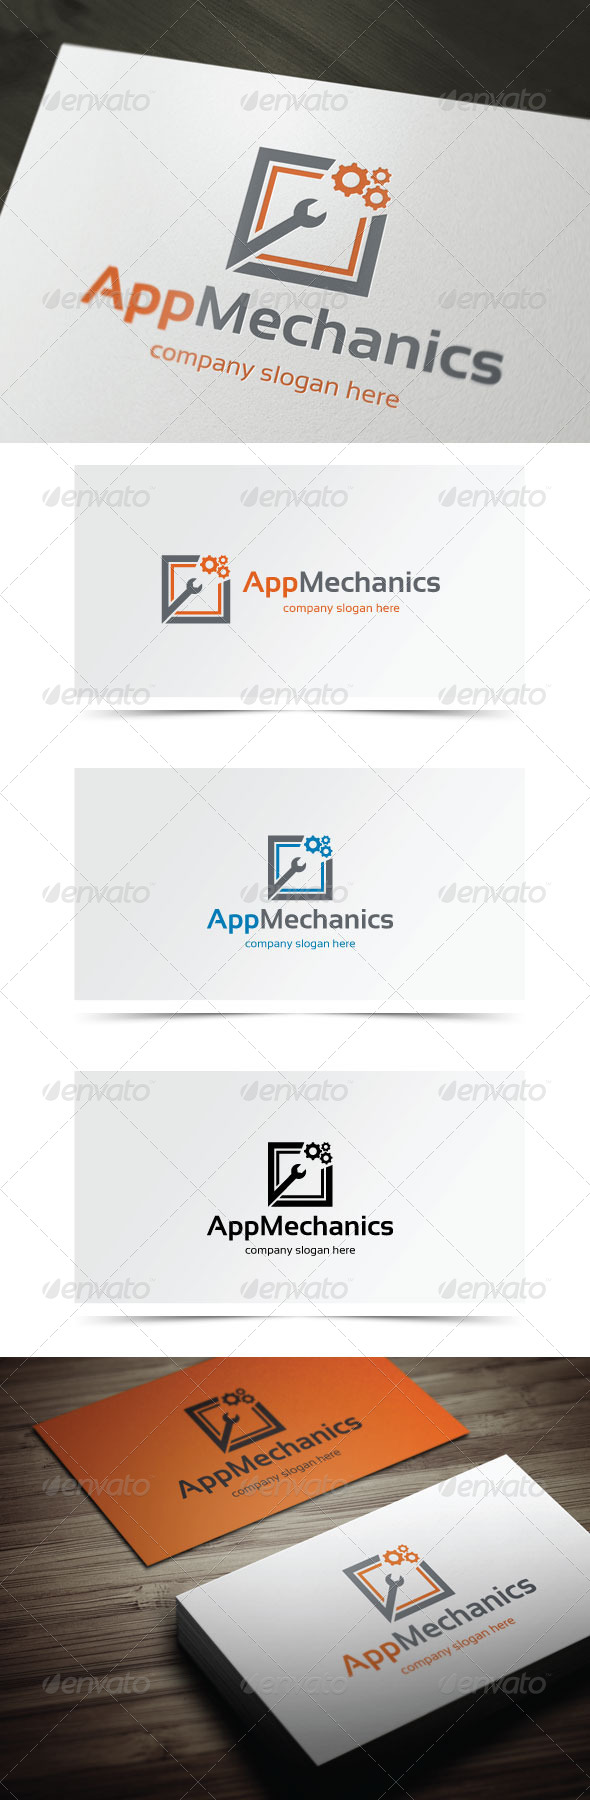 GraphicRiver App Mechanics 6059256